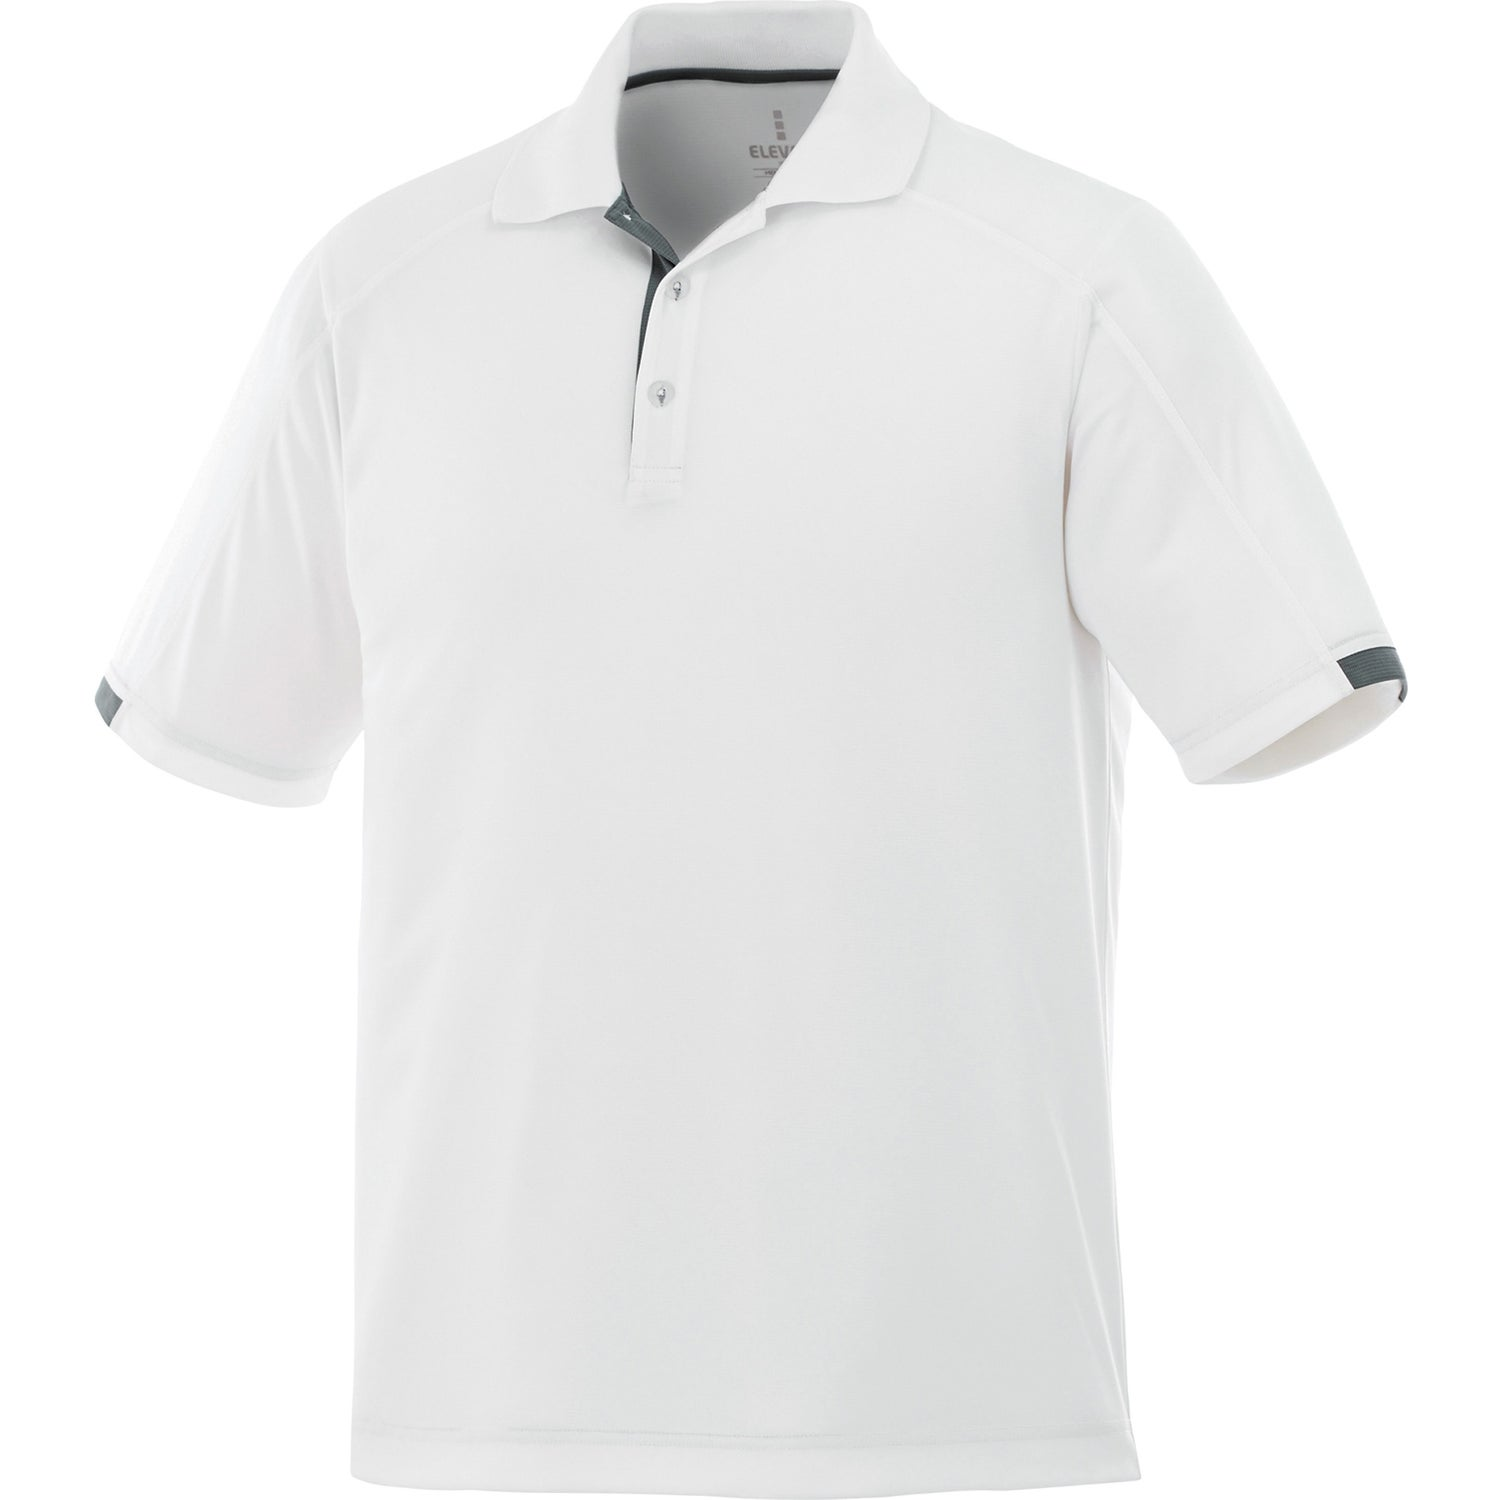 Promotional Mens Kiso Short Sleeve Polo Shirt By Trimarks With